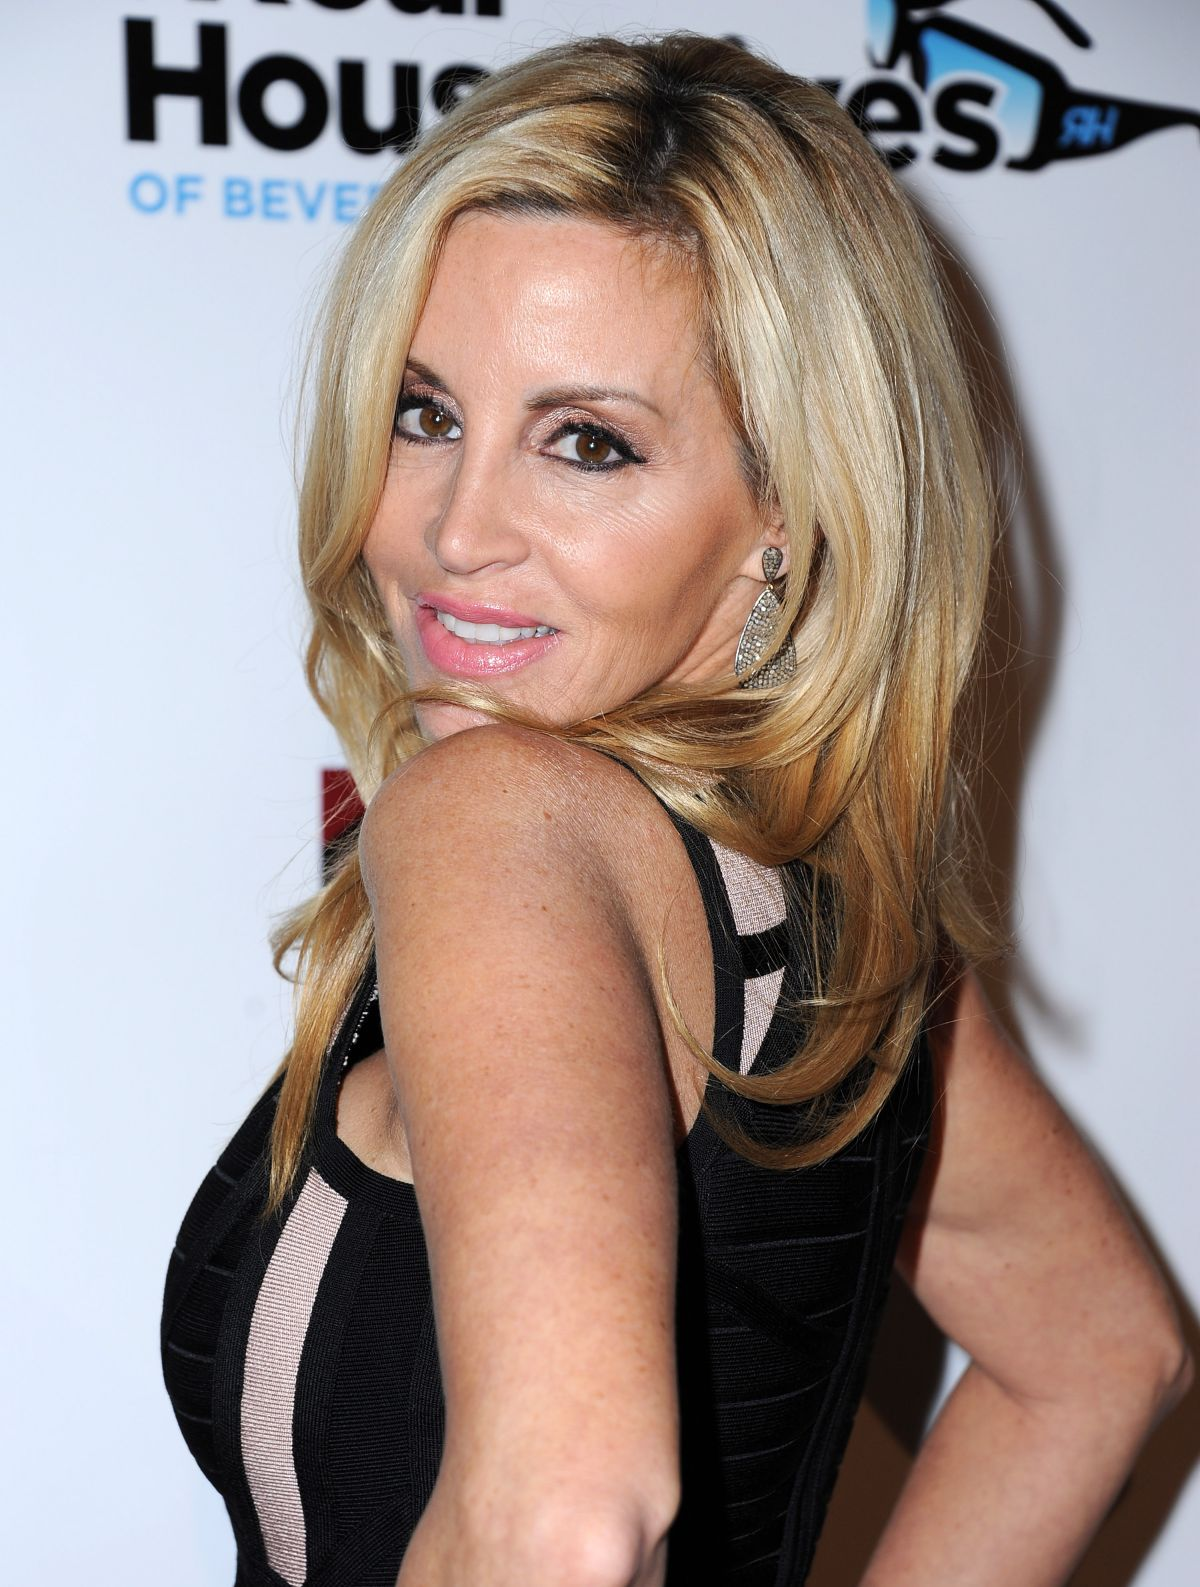 Camille Grammer nude (52 images) Leaked, Snapchat, lingerie